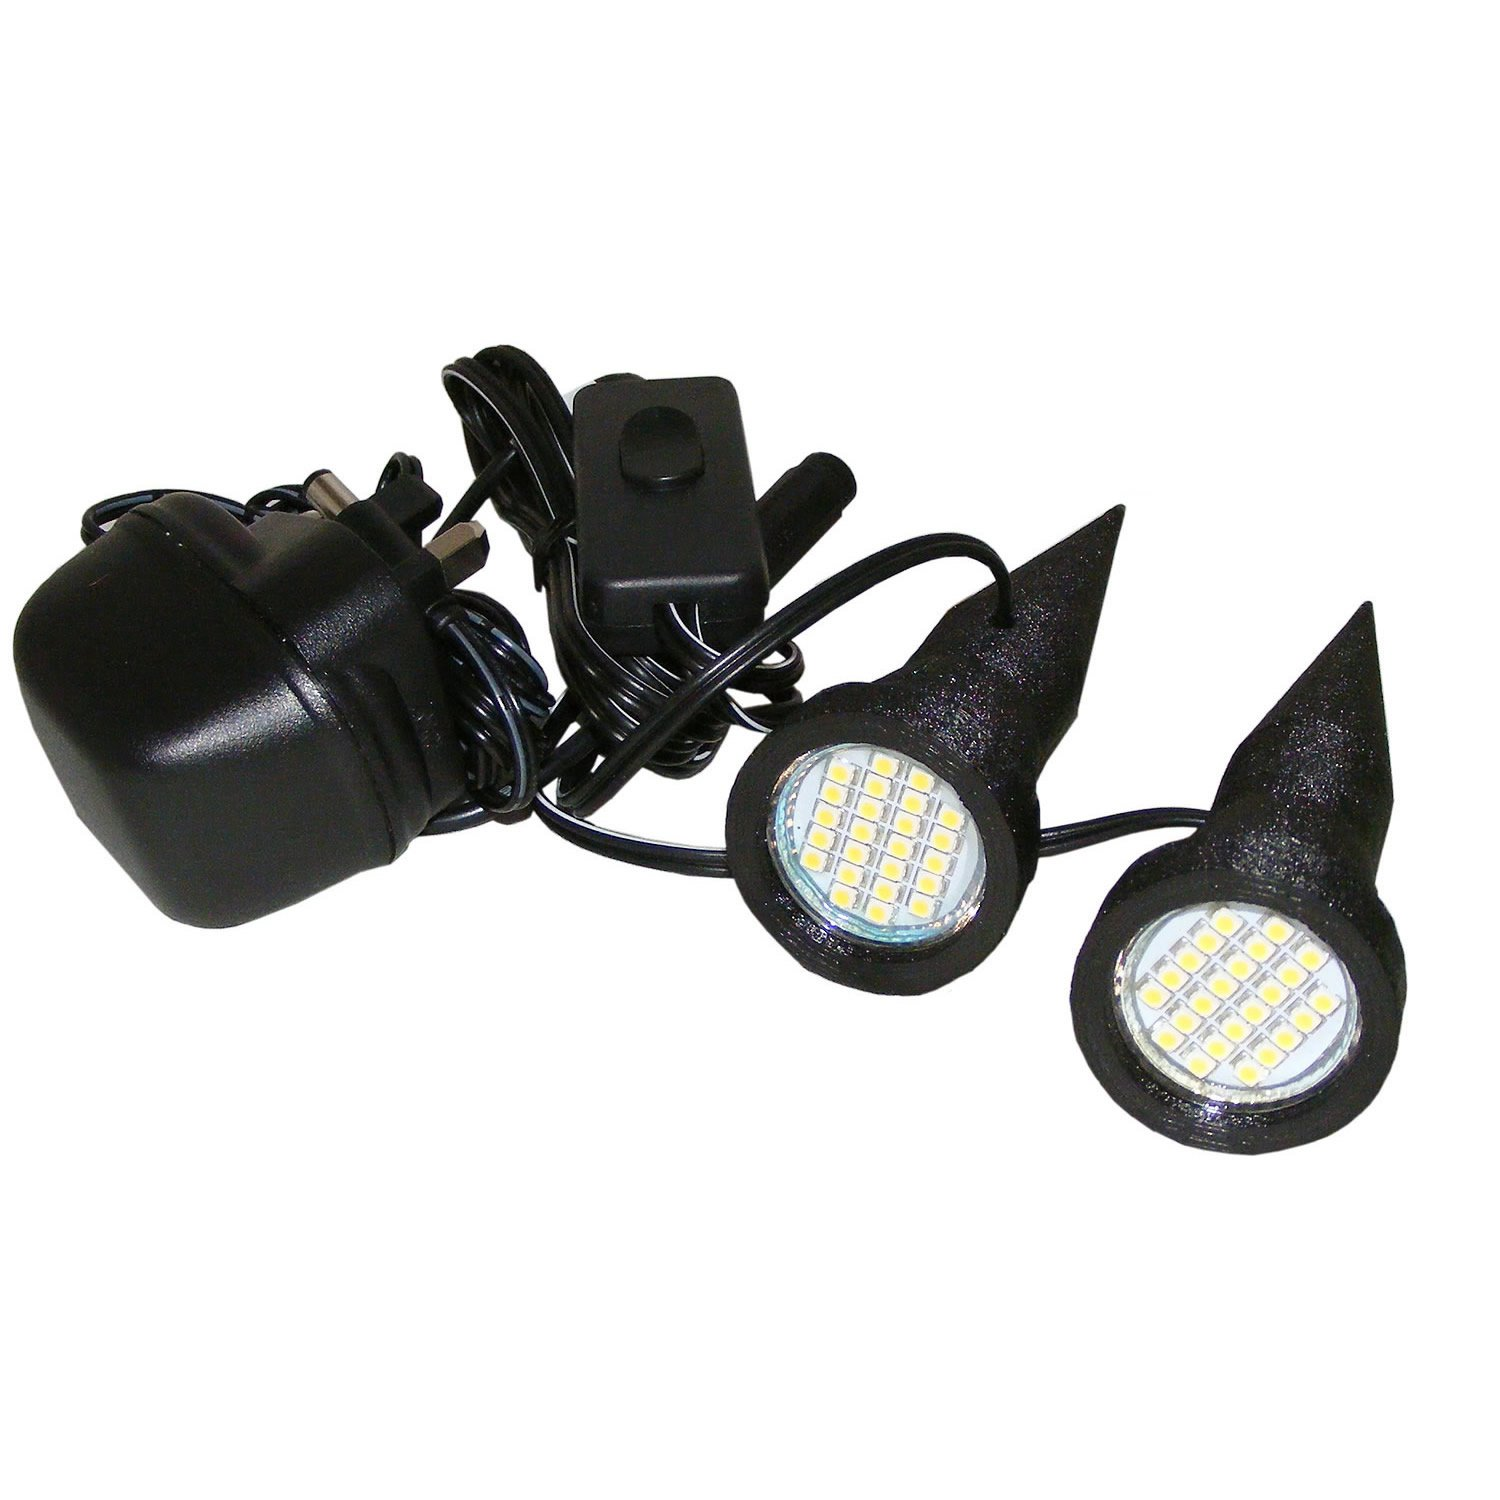 Pair of Superbright White Plant Pot Uplighters / Spike Lights with Mains Adapter